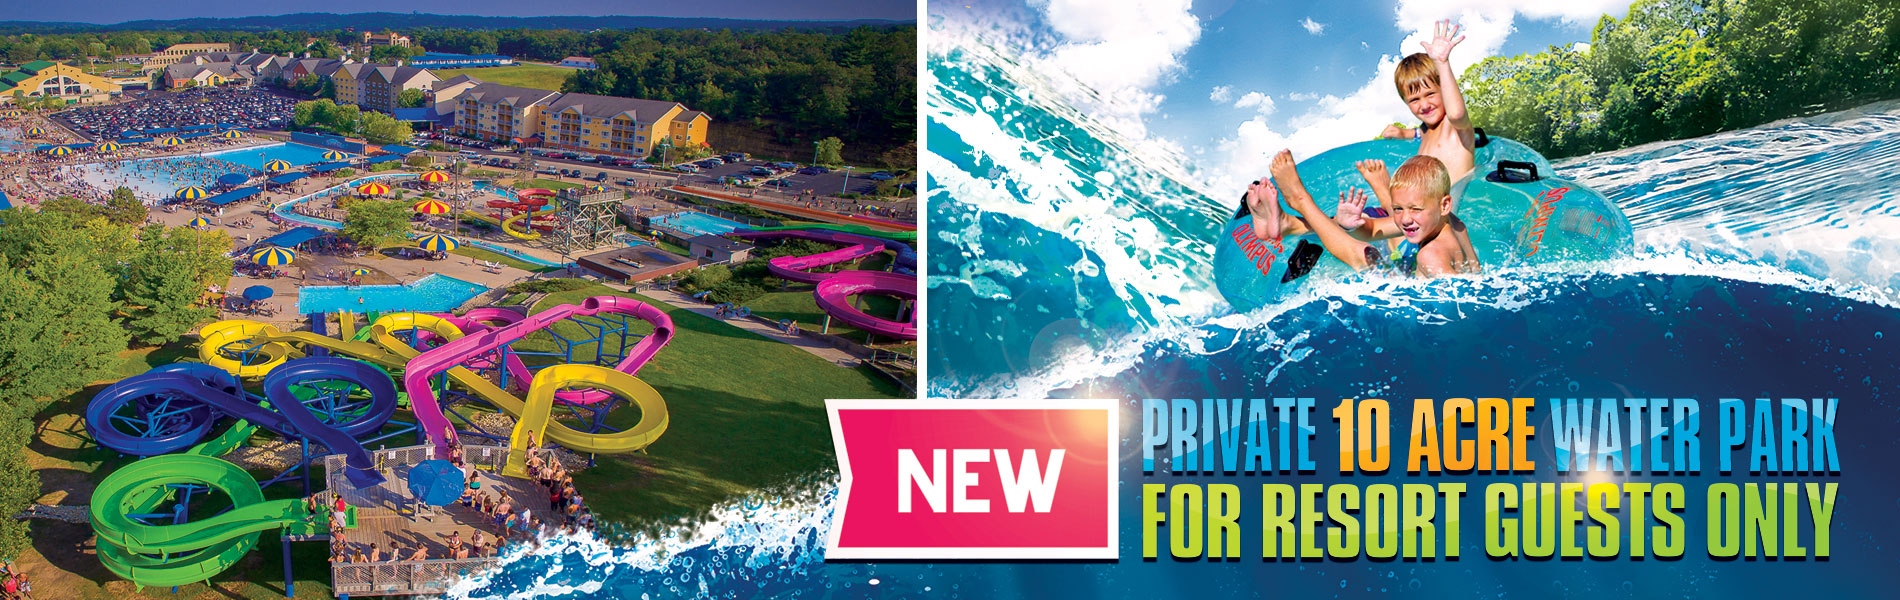 Mt. Olympus Resorts & Parks, Wisconsin Dells, Wisconsin. , likes · 1, talking about this. Mt Olympus Resorts, Water Parks, & Theme Park In.